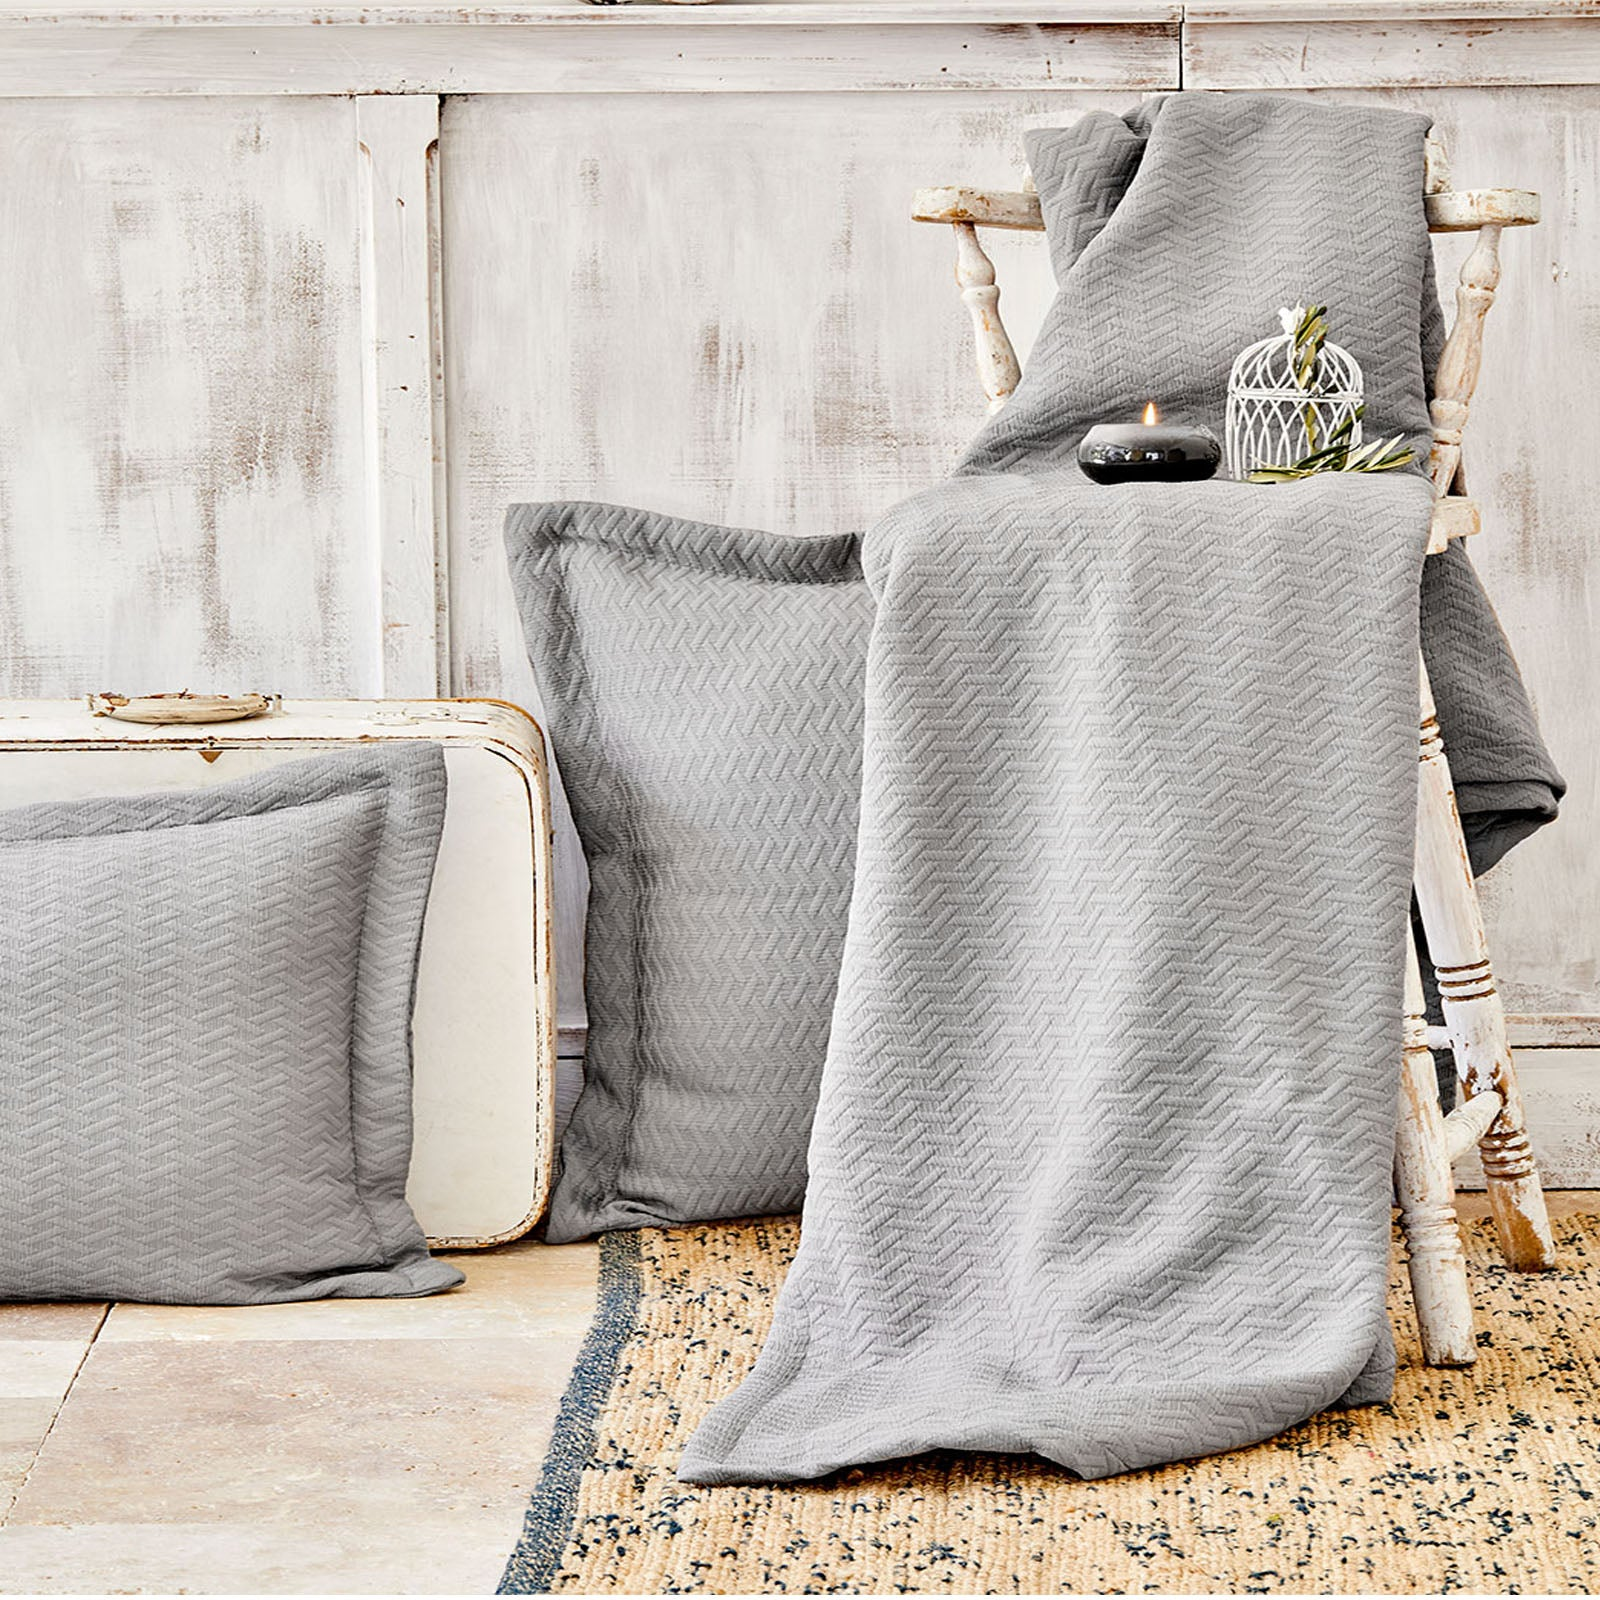 Karaca Home Charm Bold Gray Double Bed Cover Set 200.16.01.0233 -  طقم غطاء سرير مزدوج رمادي جريء من كاراجا - Shop Online Furniture and Home Decor Store in Dubai, UAE at ebarza